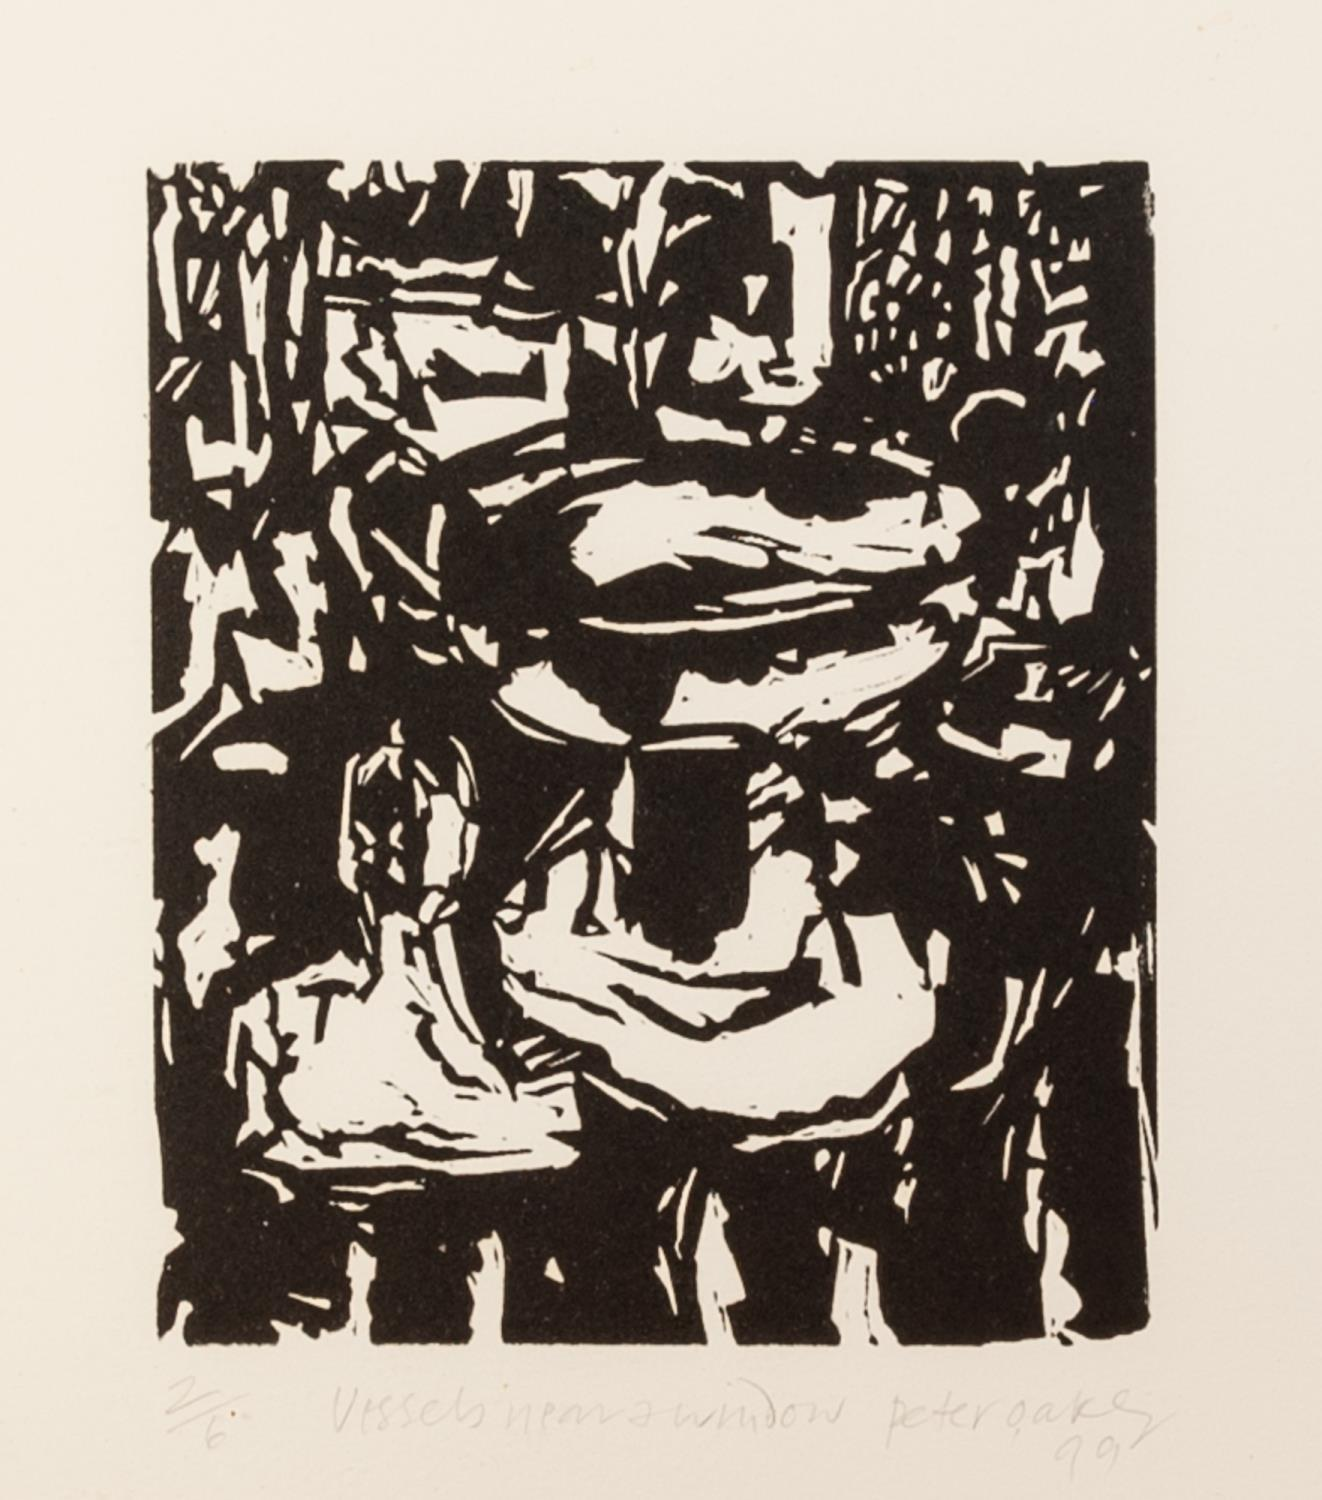 PETER OAKLEY (1935-2007) SEVEN ARTIST SIGNED LIMITED EDITION BLACK AND WHITE WOODCUTS OF SIMILAR - Image 2 of 8